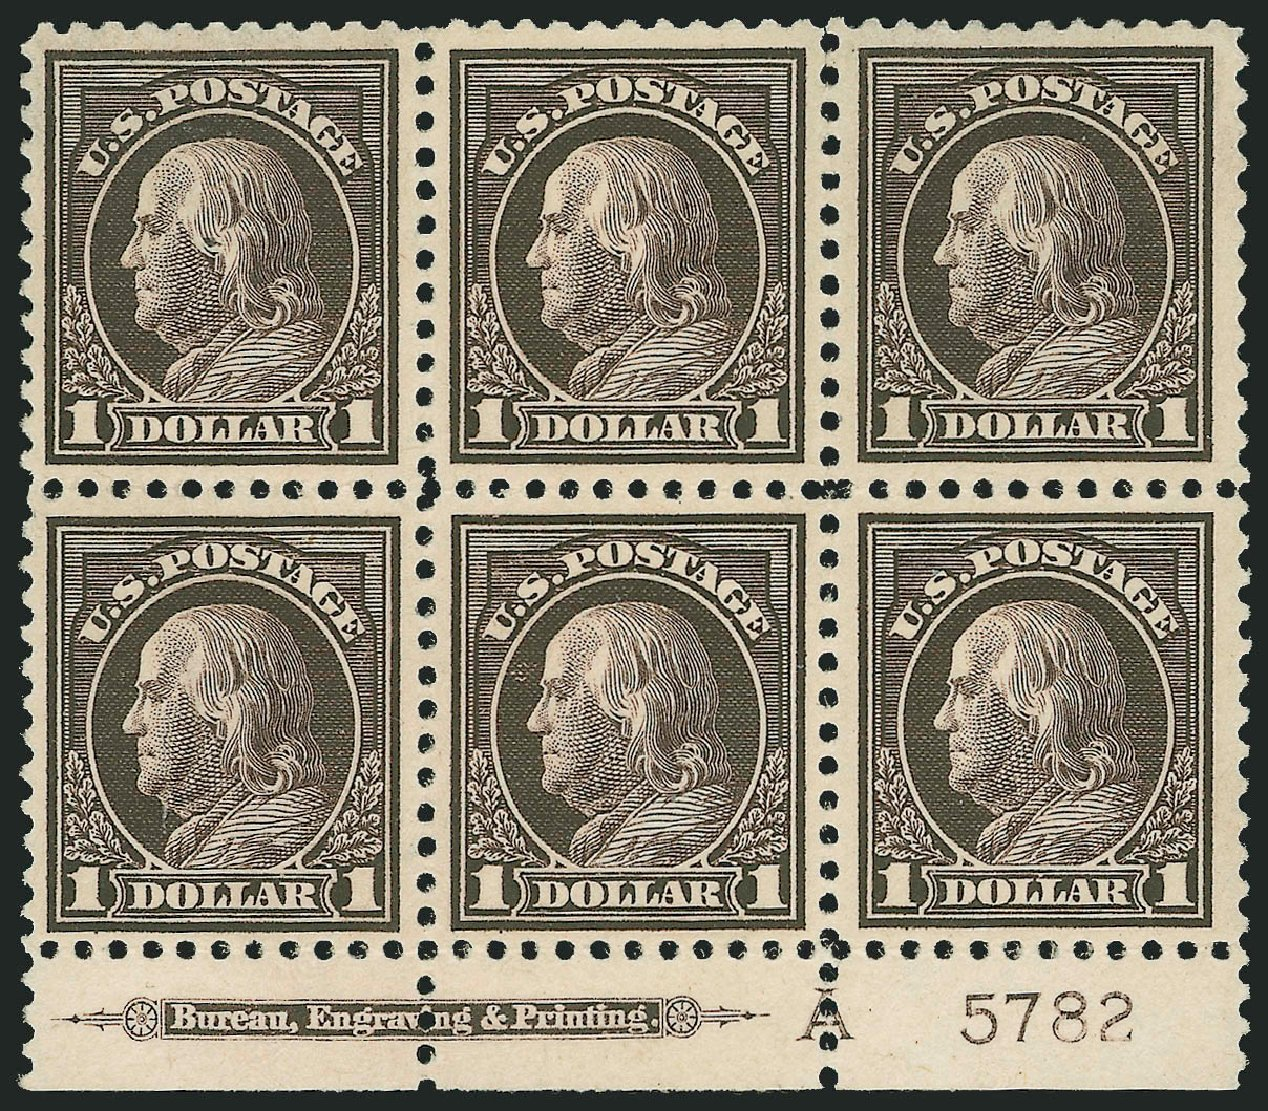 Price of US Stamp Scott Catalog 518 - 1917 US$1.00 Franklin Perf 11. Robert Siegel Auction Galleries, Mar 2014, Sale 1067, Lot 1591